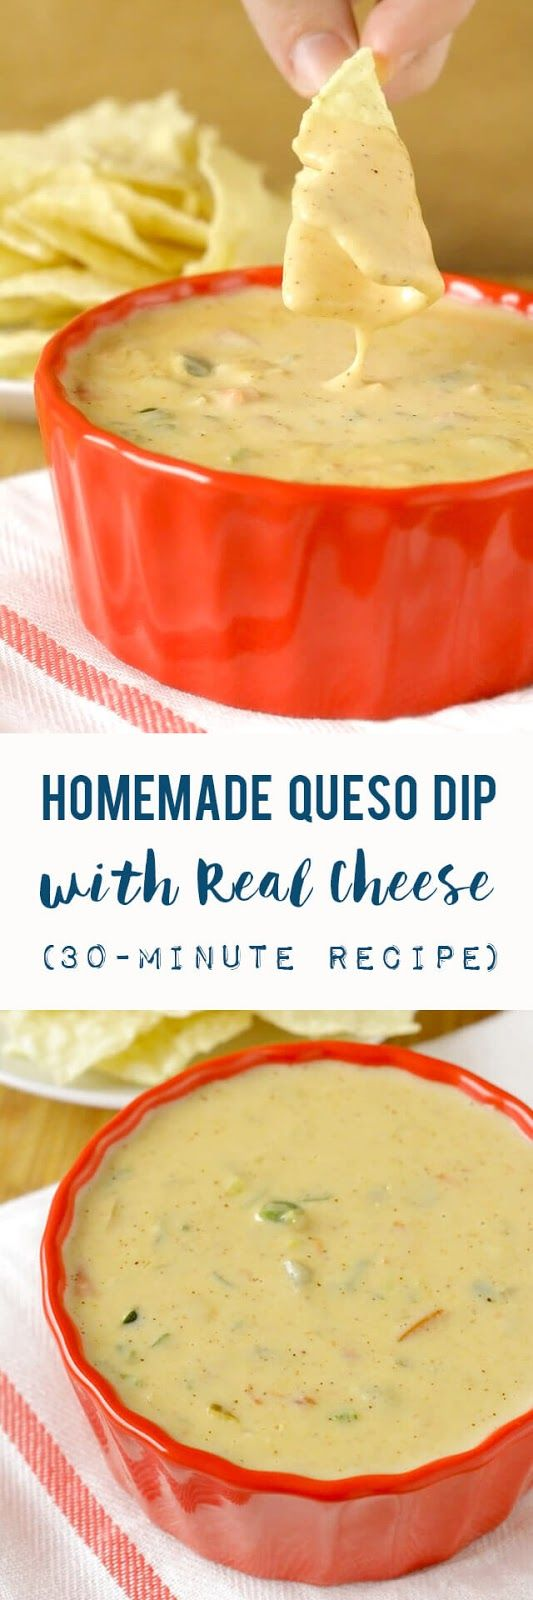 Homemade Queso (Cheese) Dip